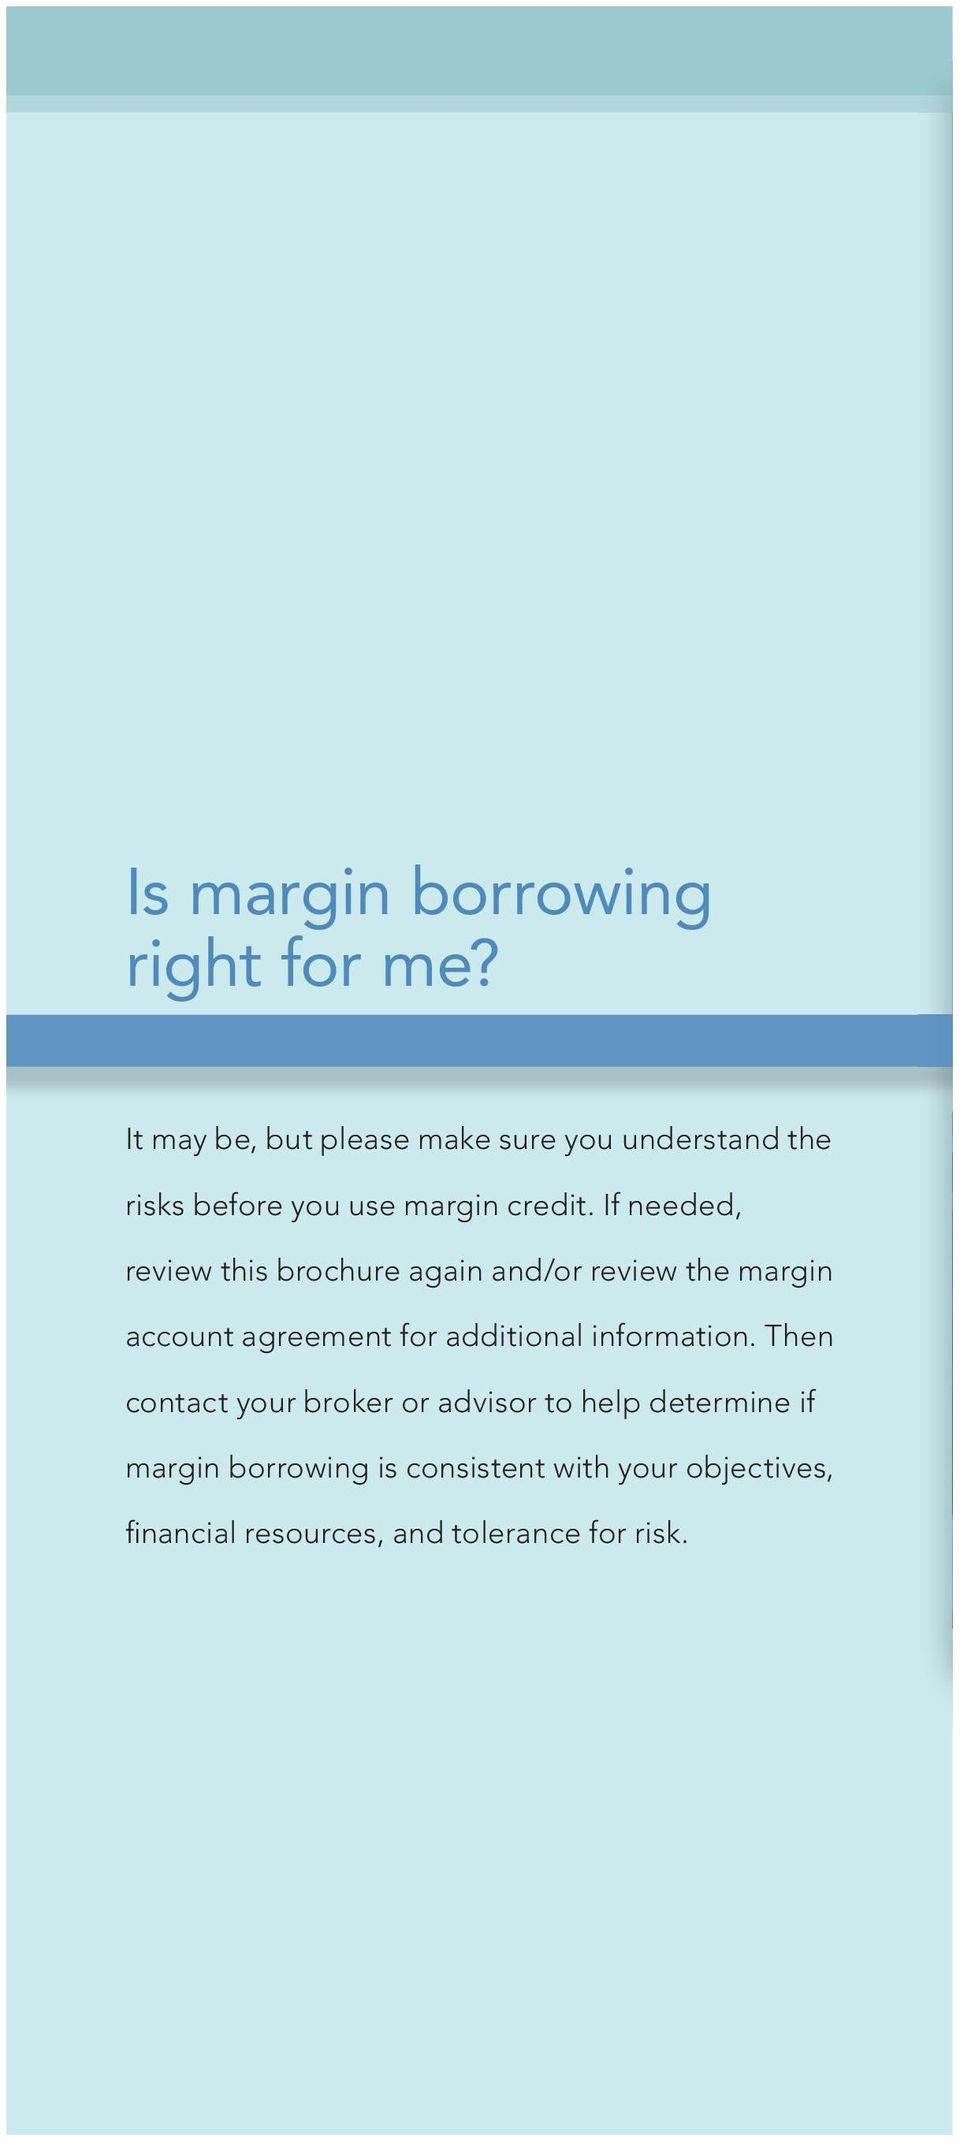 If needed, review this brochure again and/or review the margin account agreement for additional